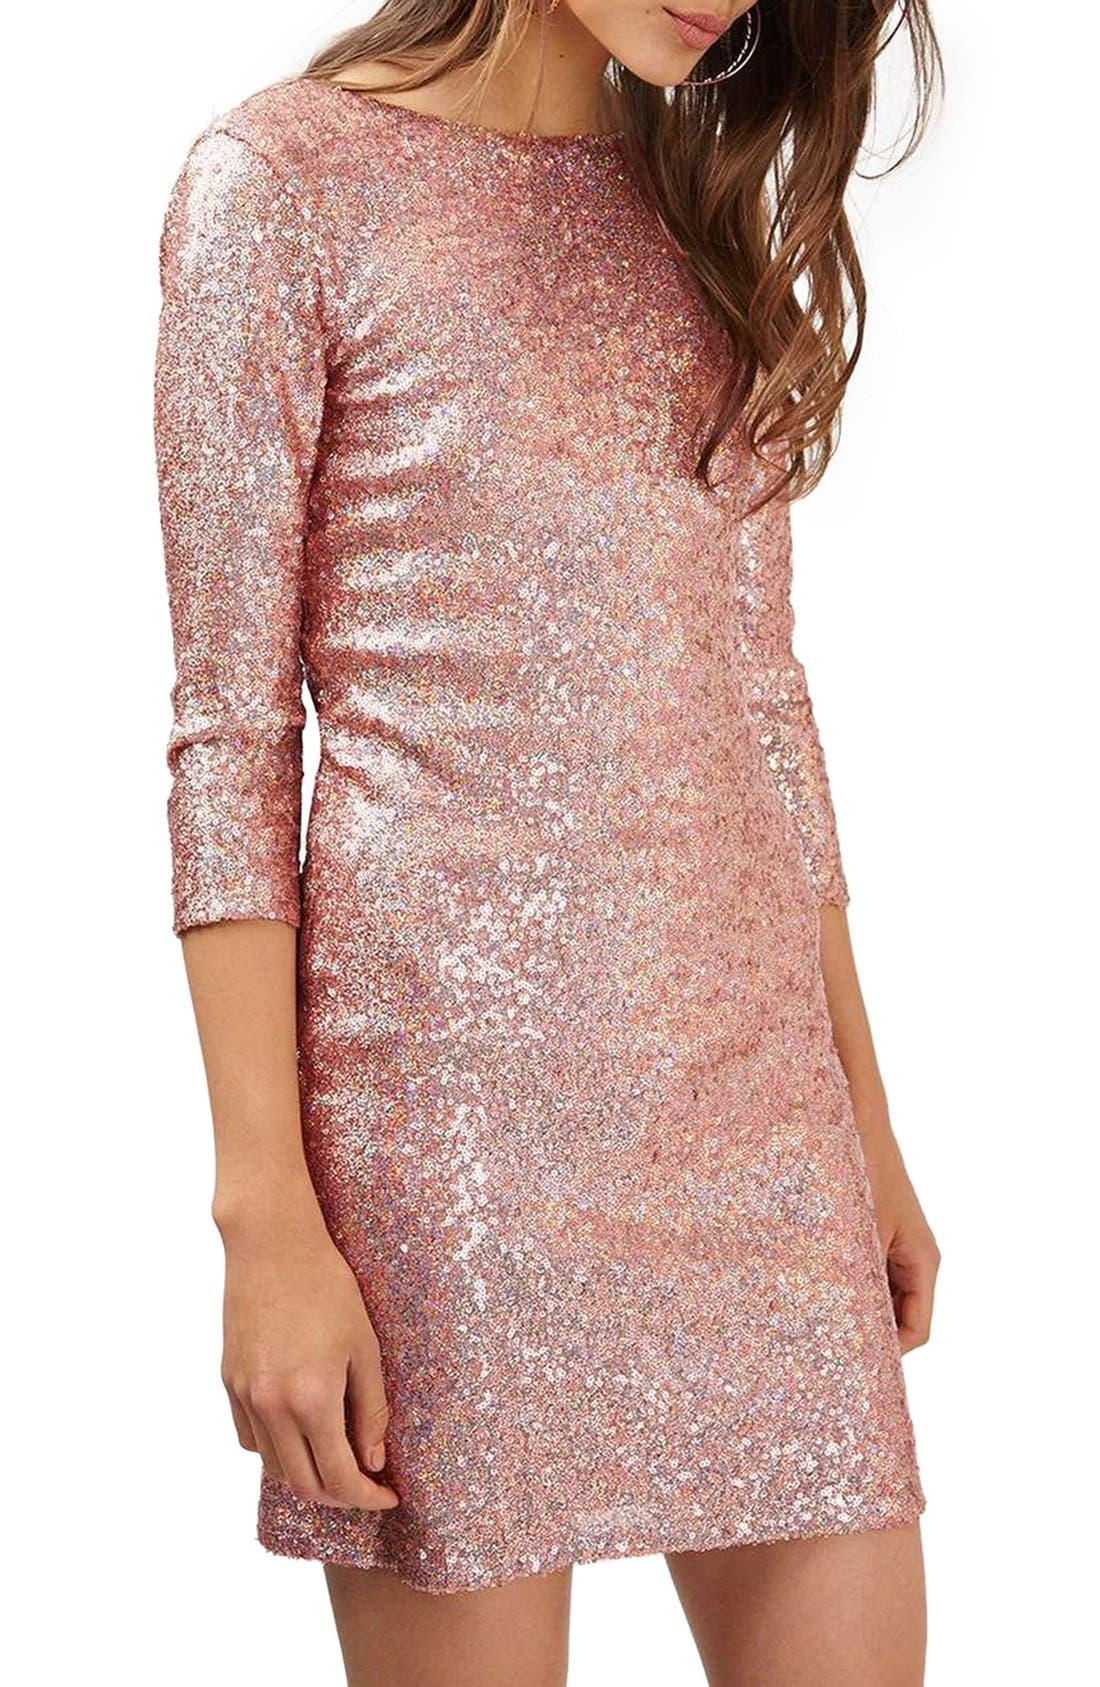 Topshop Sequin Body-Con Minidress